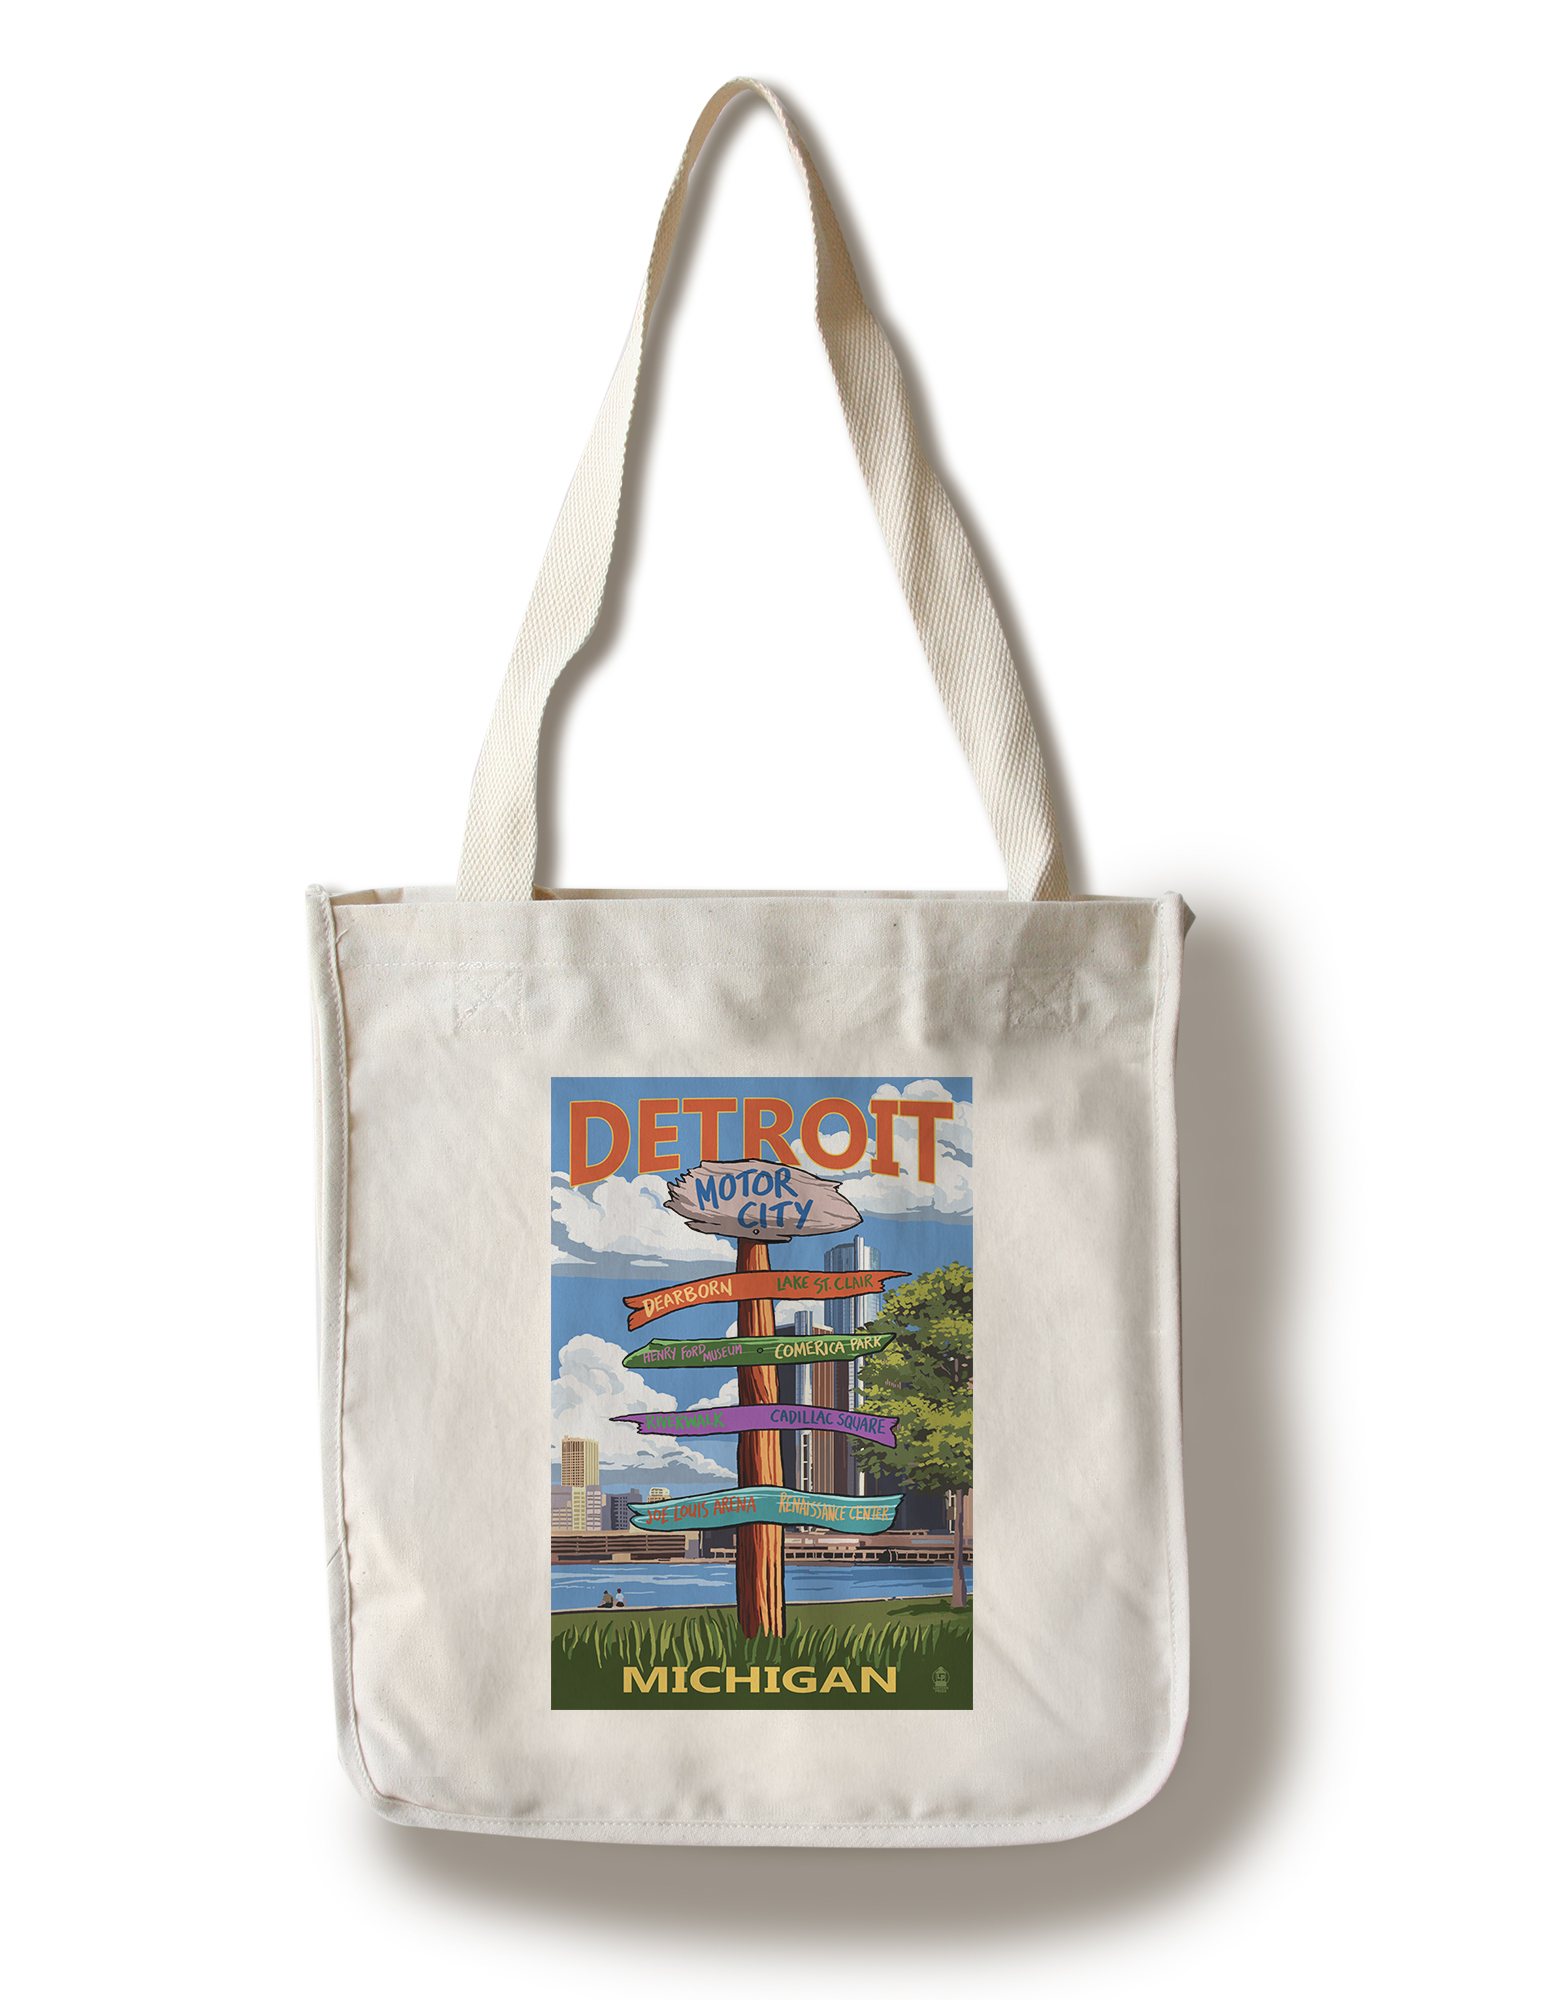 Detroit, Michigan Sign Post Lantern Press Artwork (100% Cotton Tote Bag Reusable) by Lantern Press